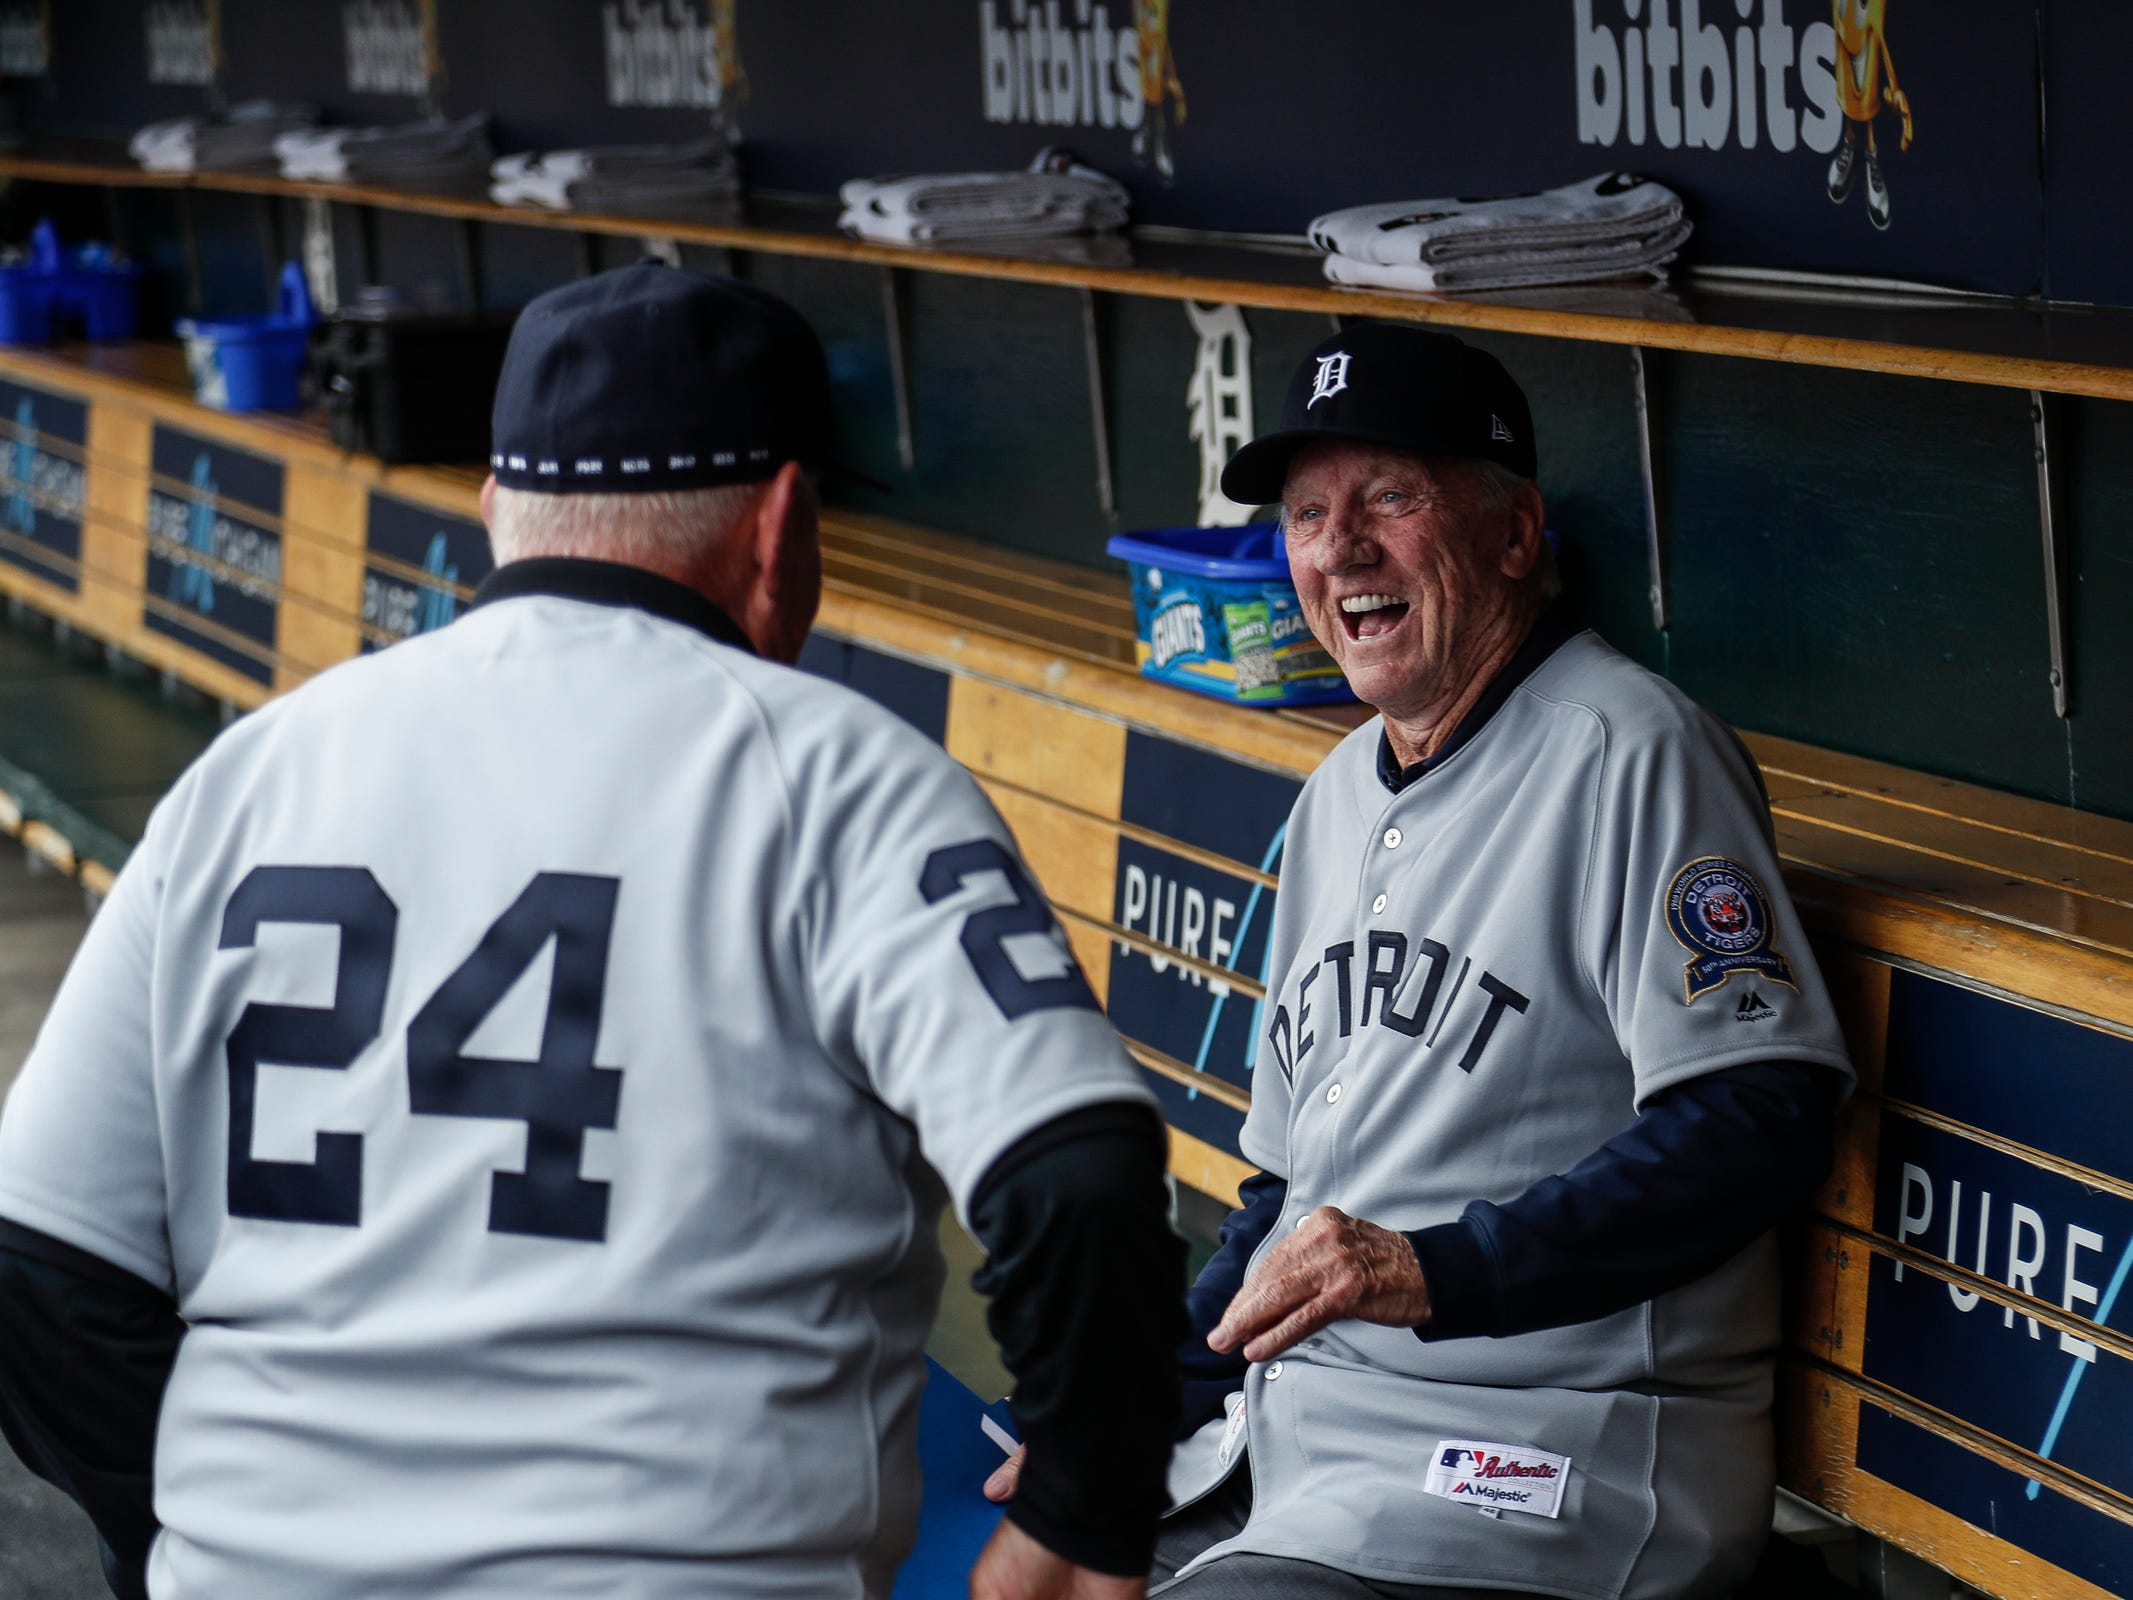 Former Detroit Tigers outfielder Al Kaline, center, reacts as he watches outfielder Mickey Stanley walk into the dugout during the 50th anniversary of the 1968 World Series championship at Comerica Park in downtown Detroit, Saturday, Sept. 8, 2018.